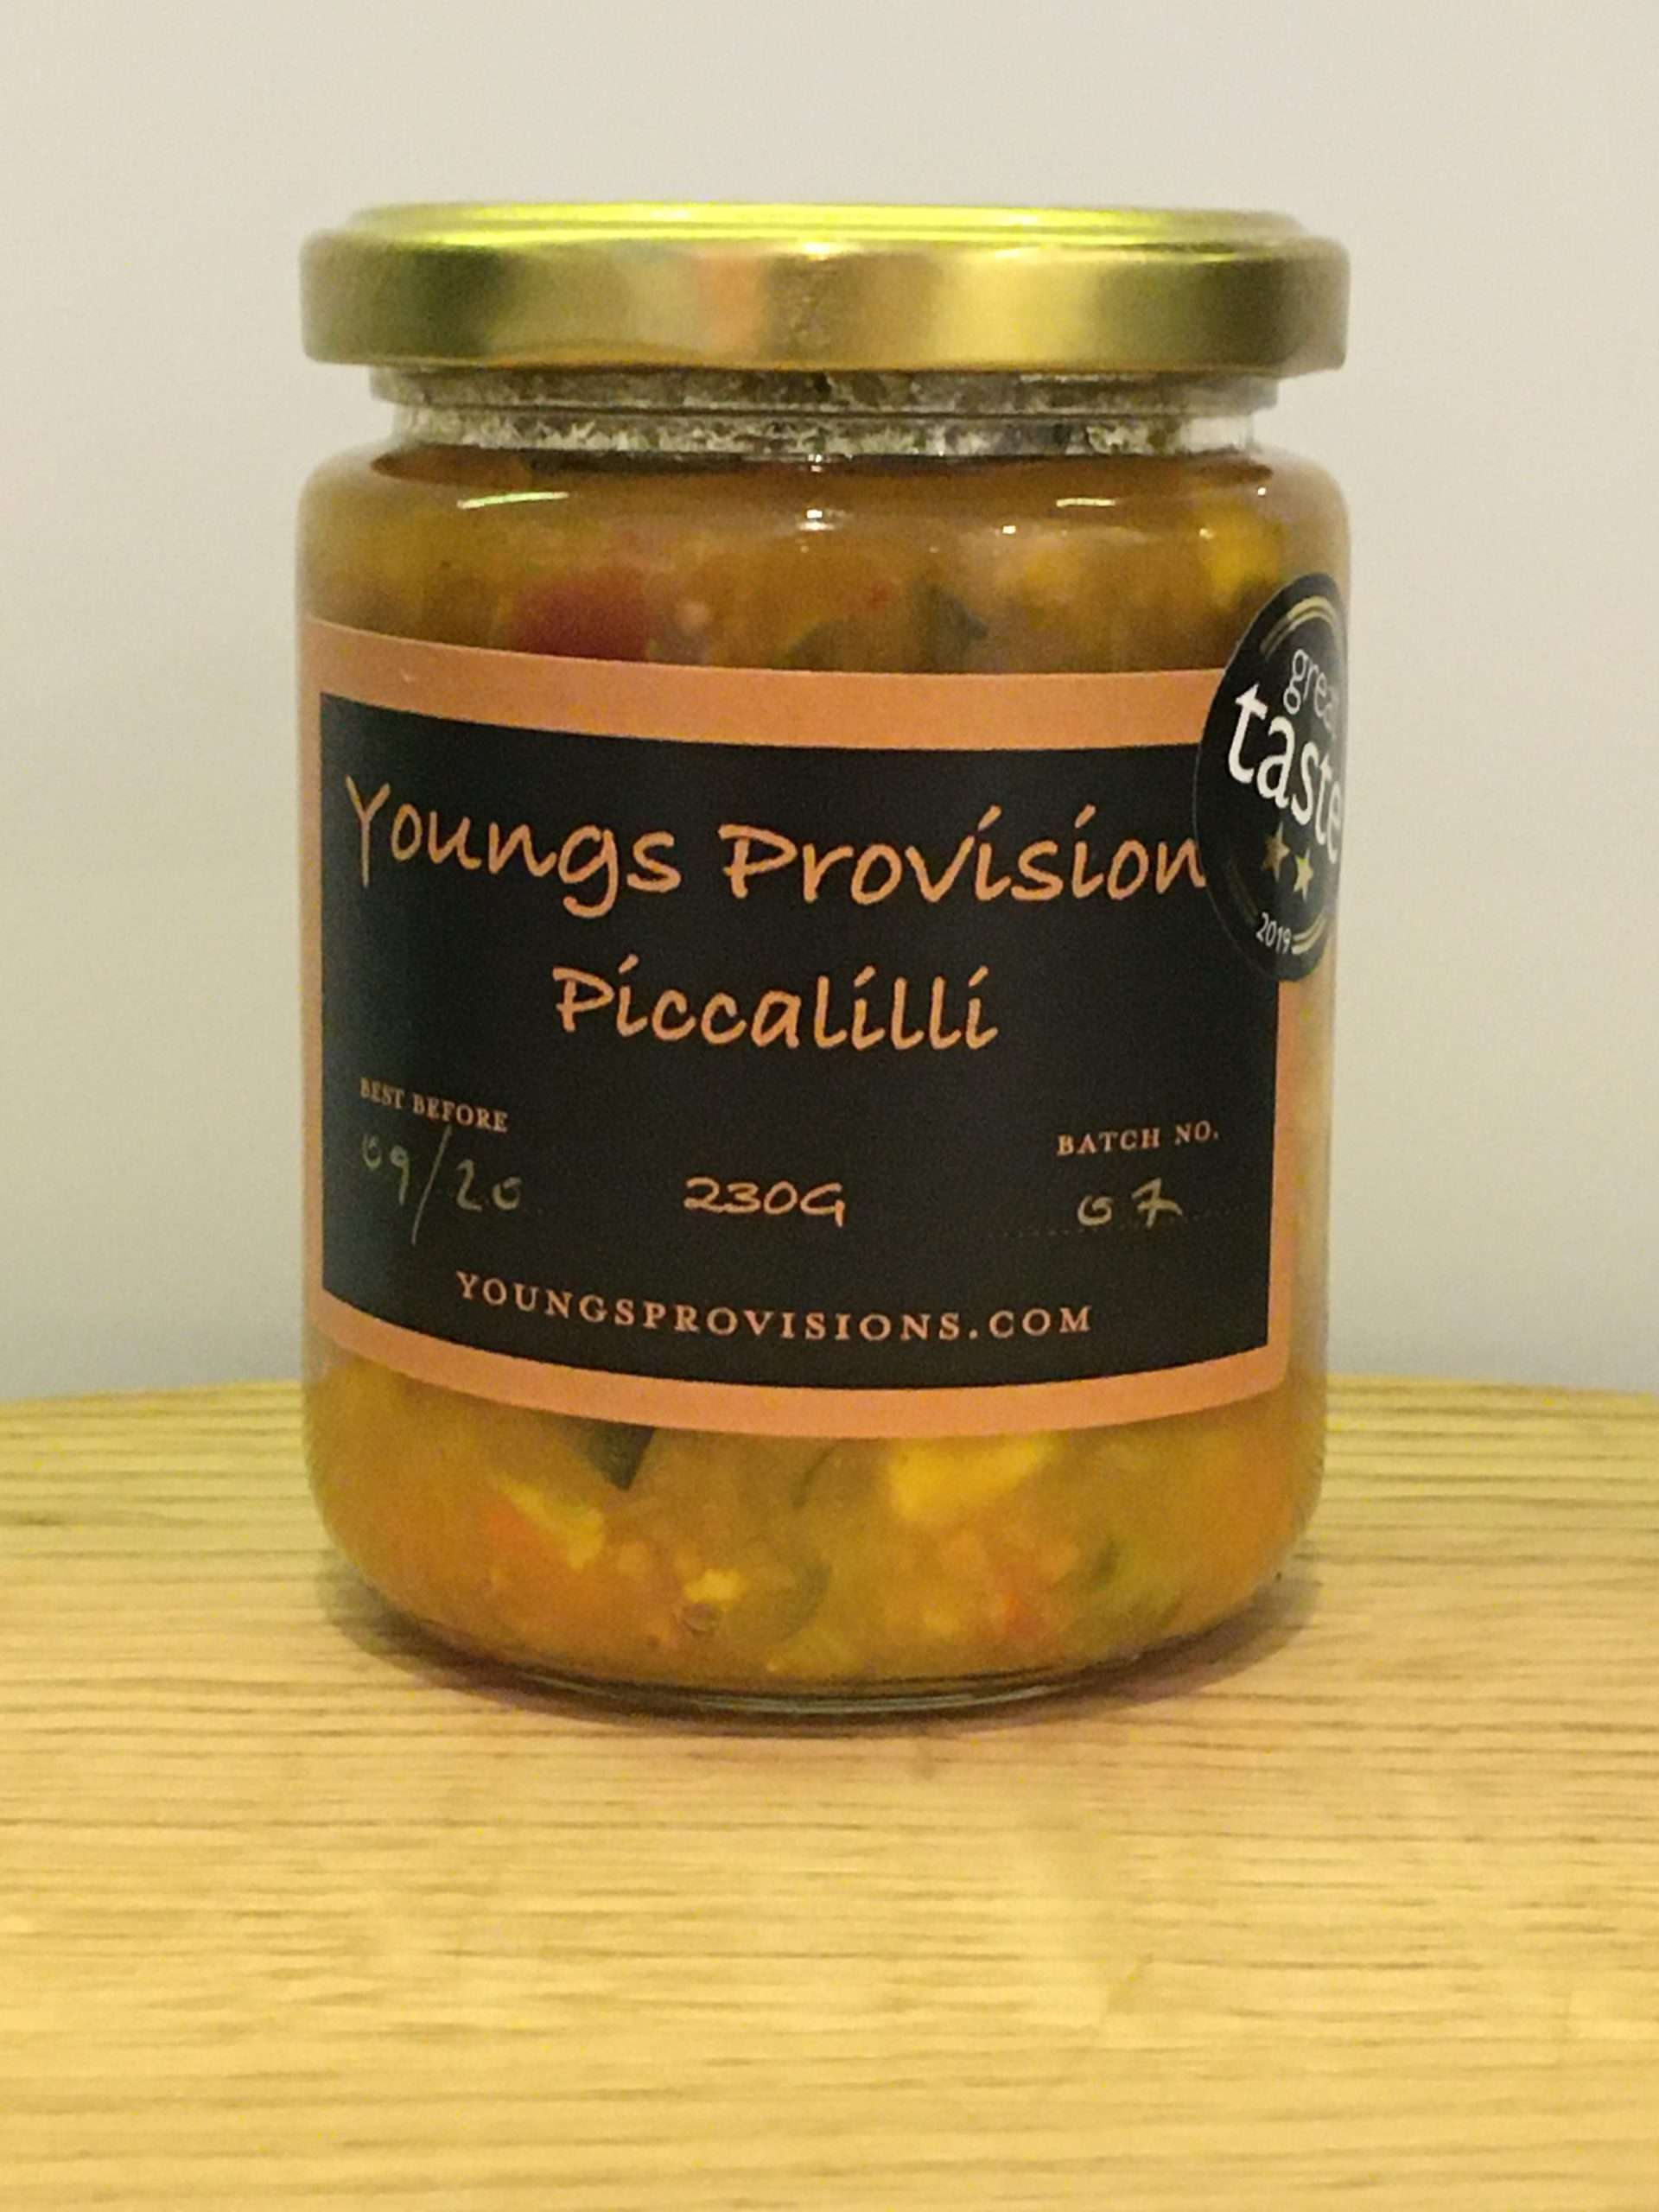 Youngs Provisions Piccalilli